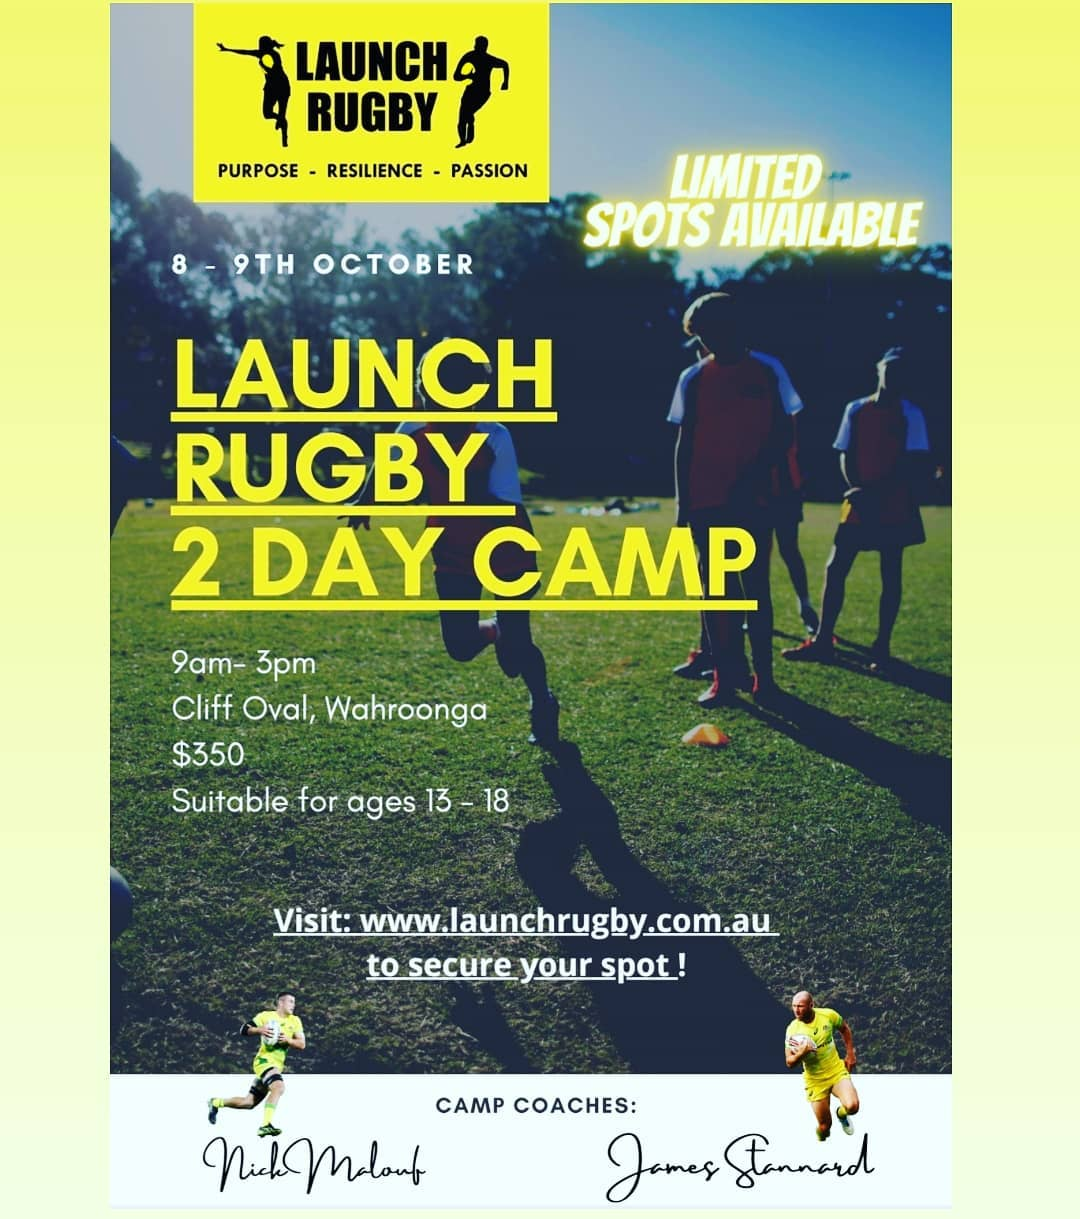 To secure your spot at the Launch Rugby 2 day camp visit:...